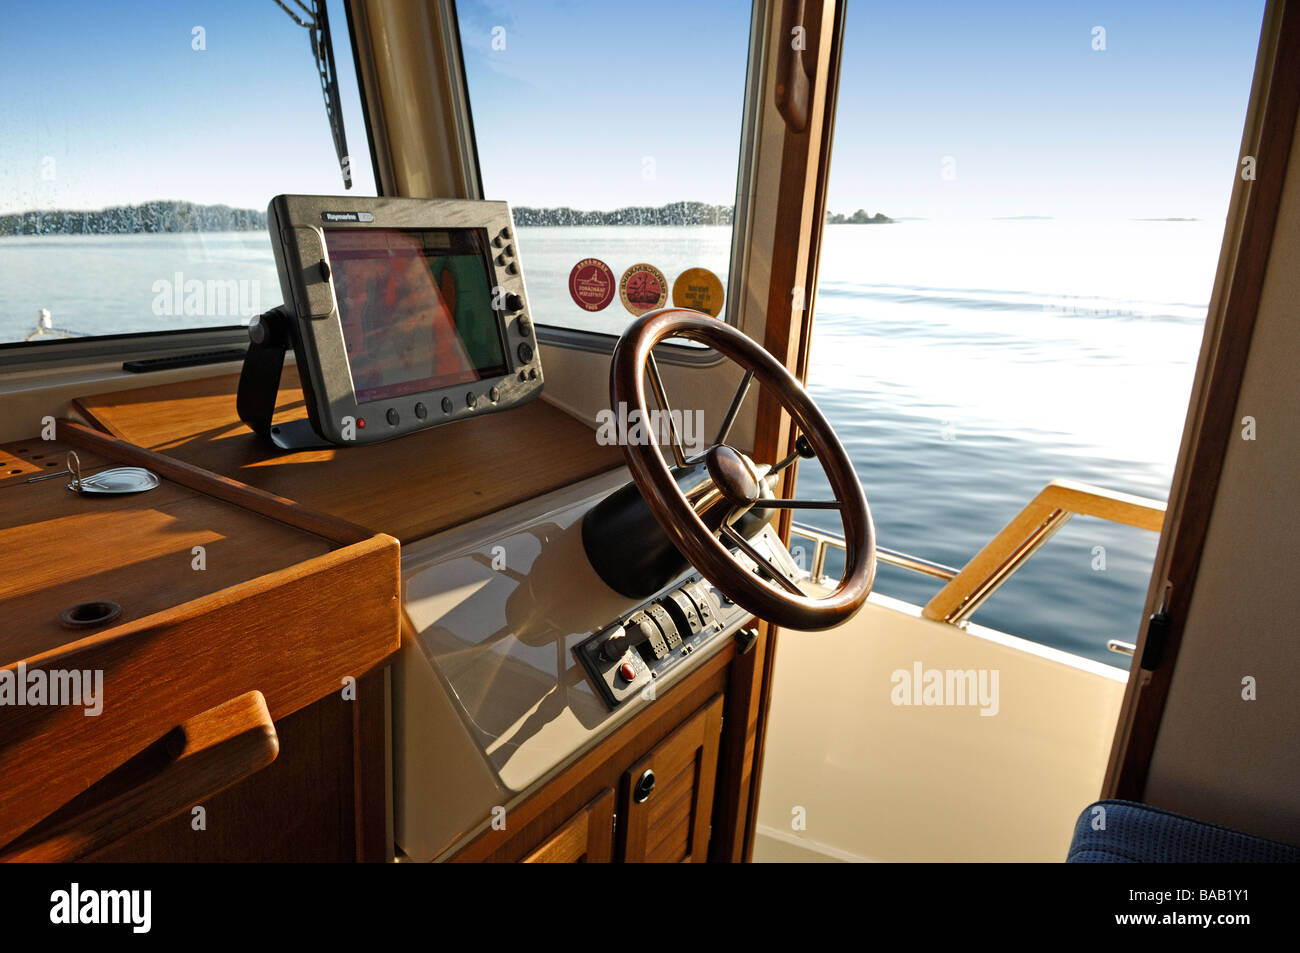 Driver seat on a boat, Sweden. - Stock Image